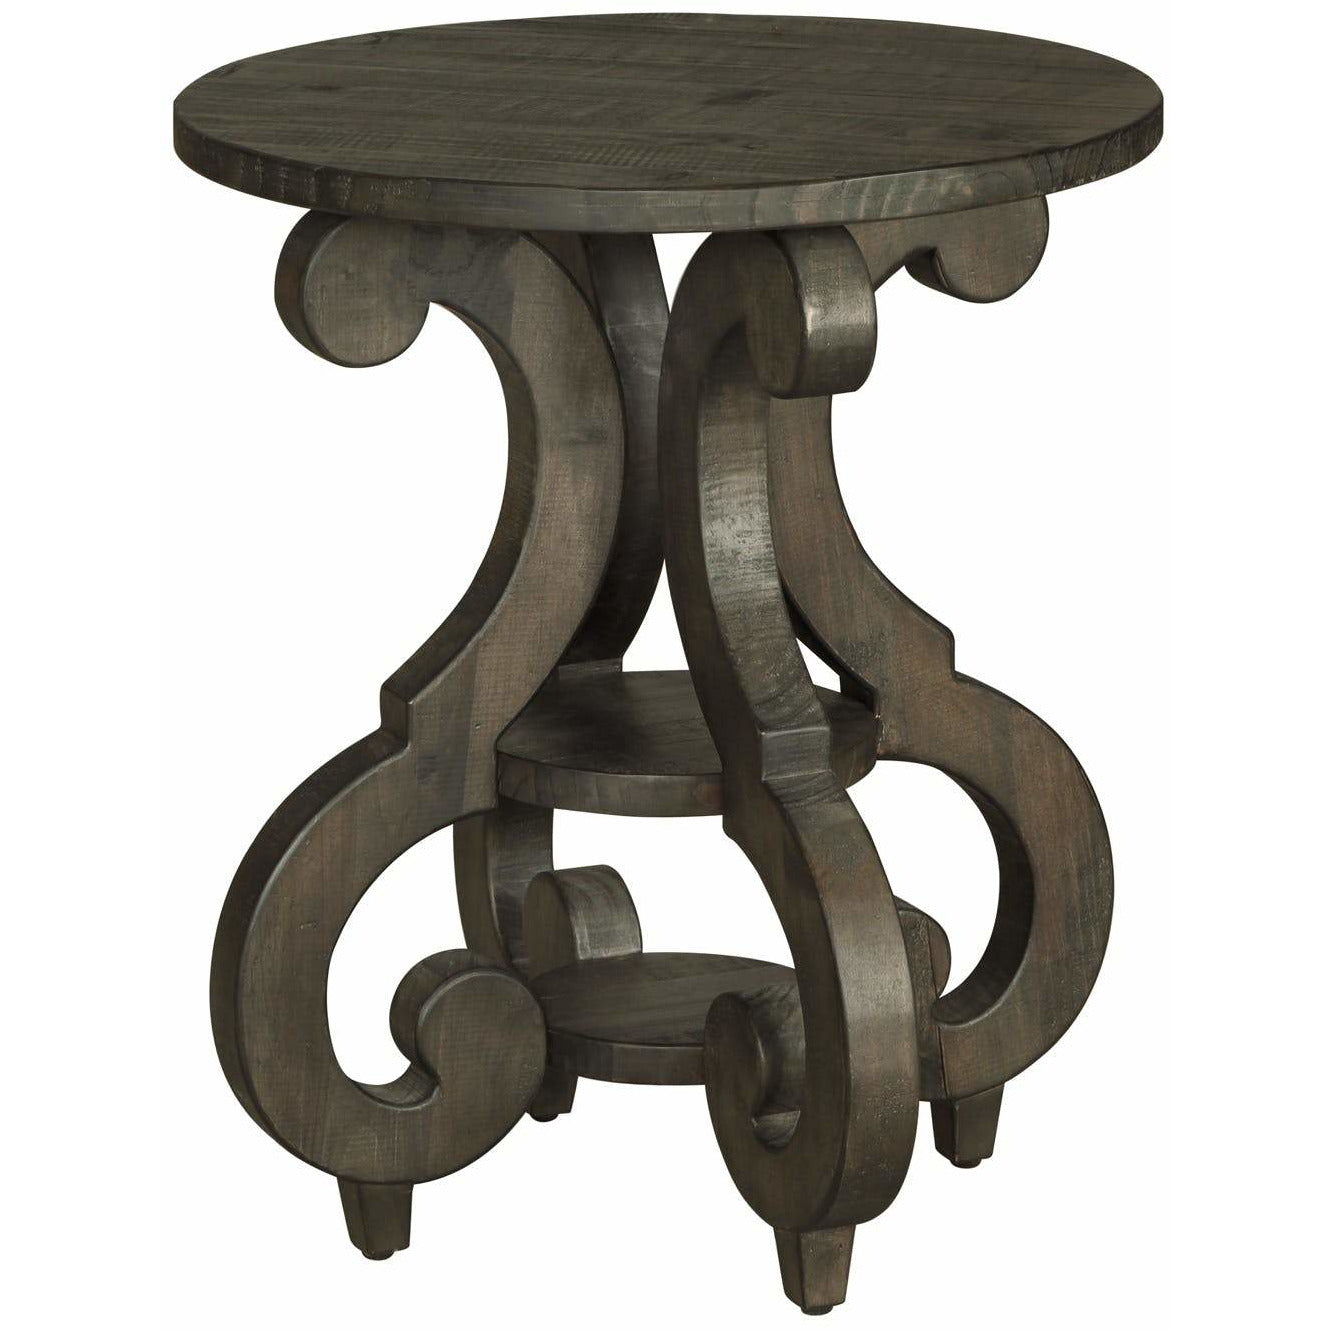 Marvelous Bellamy Accent Table Pdpeps Interior Chair Design Pdpepsorg